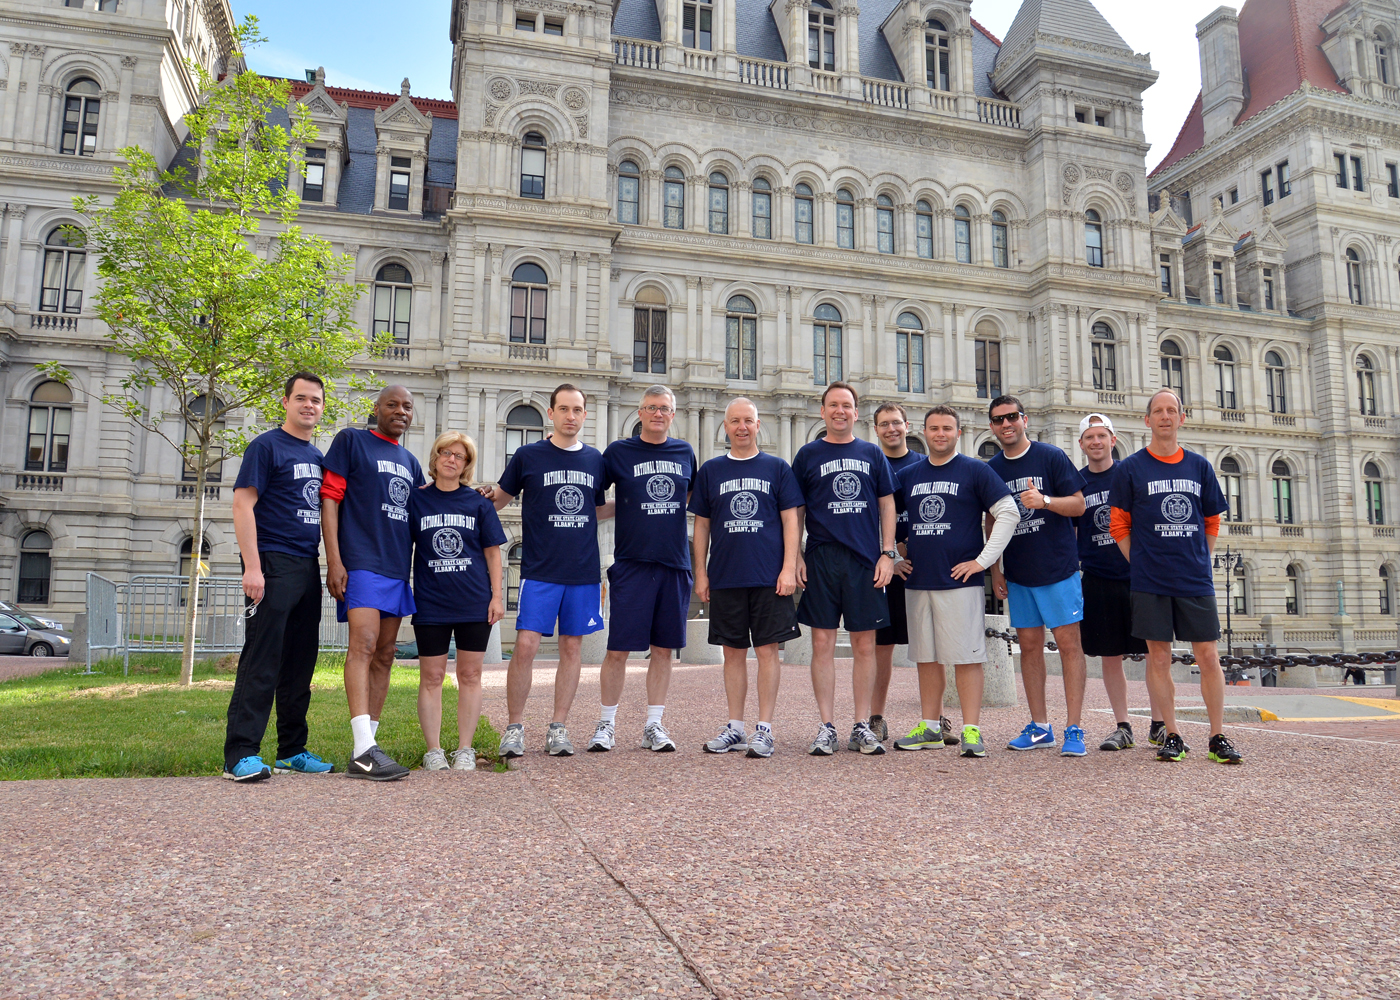 New York State Senators and Assemblymembers and Staff go for a run at the State Capital for National Running Day.